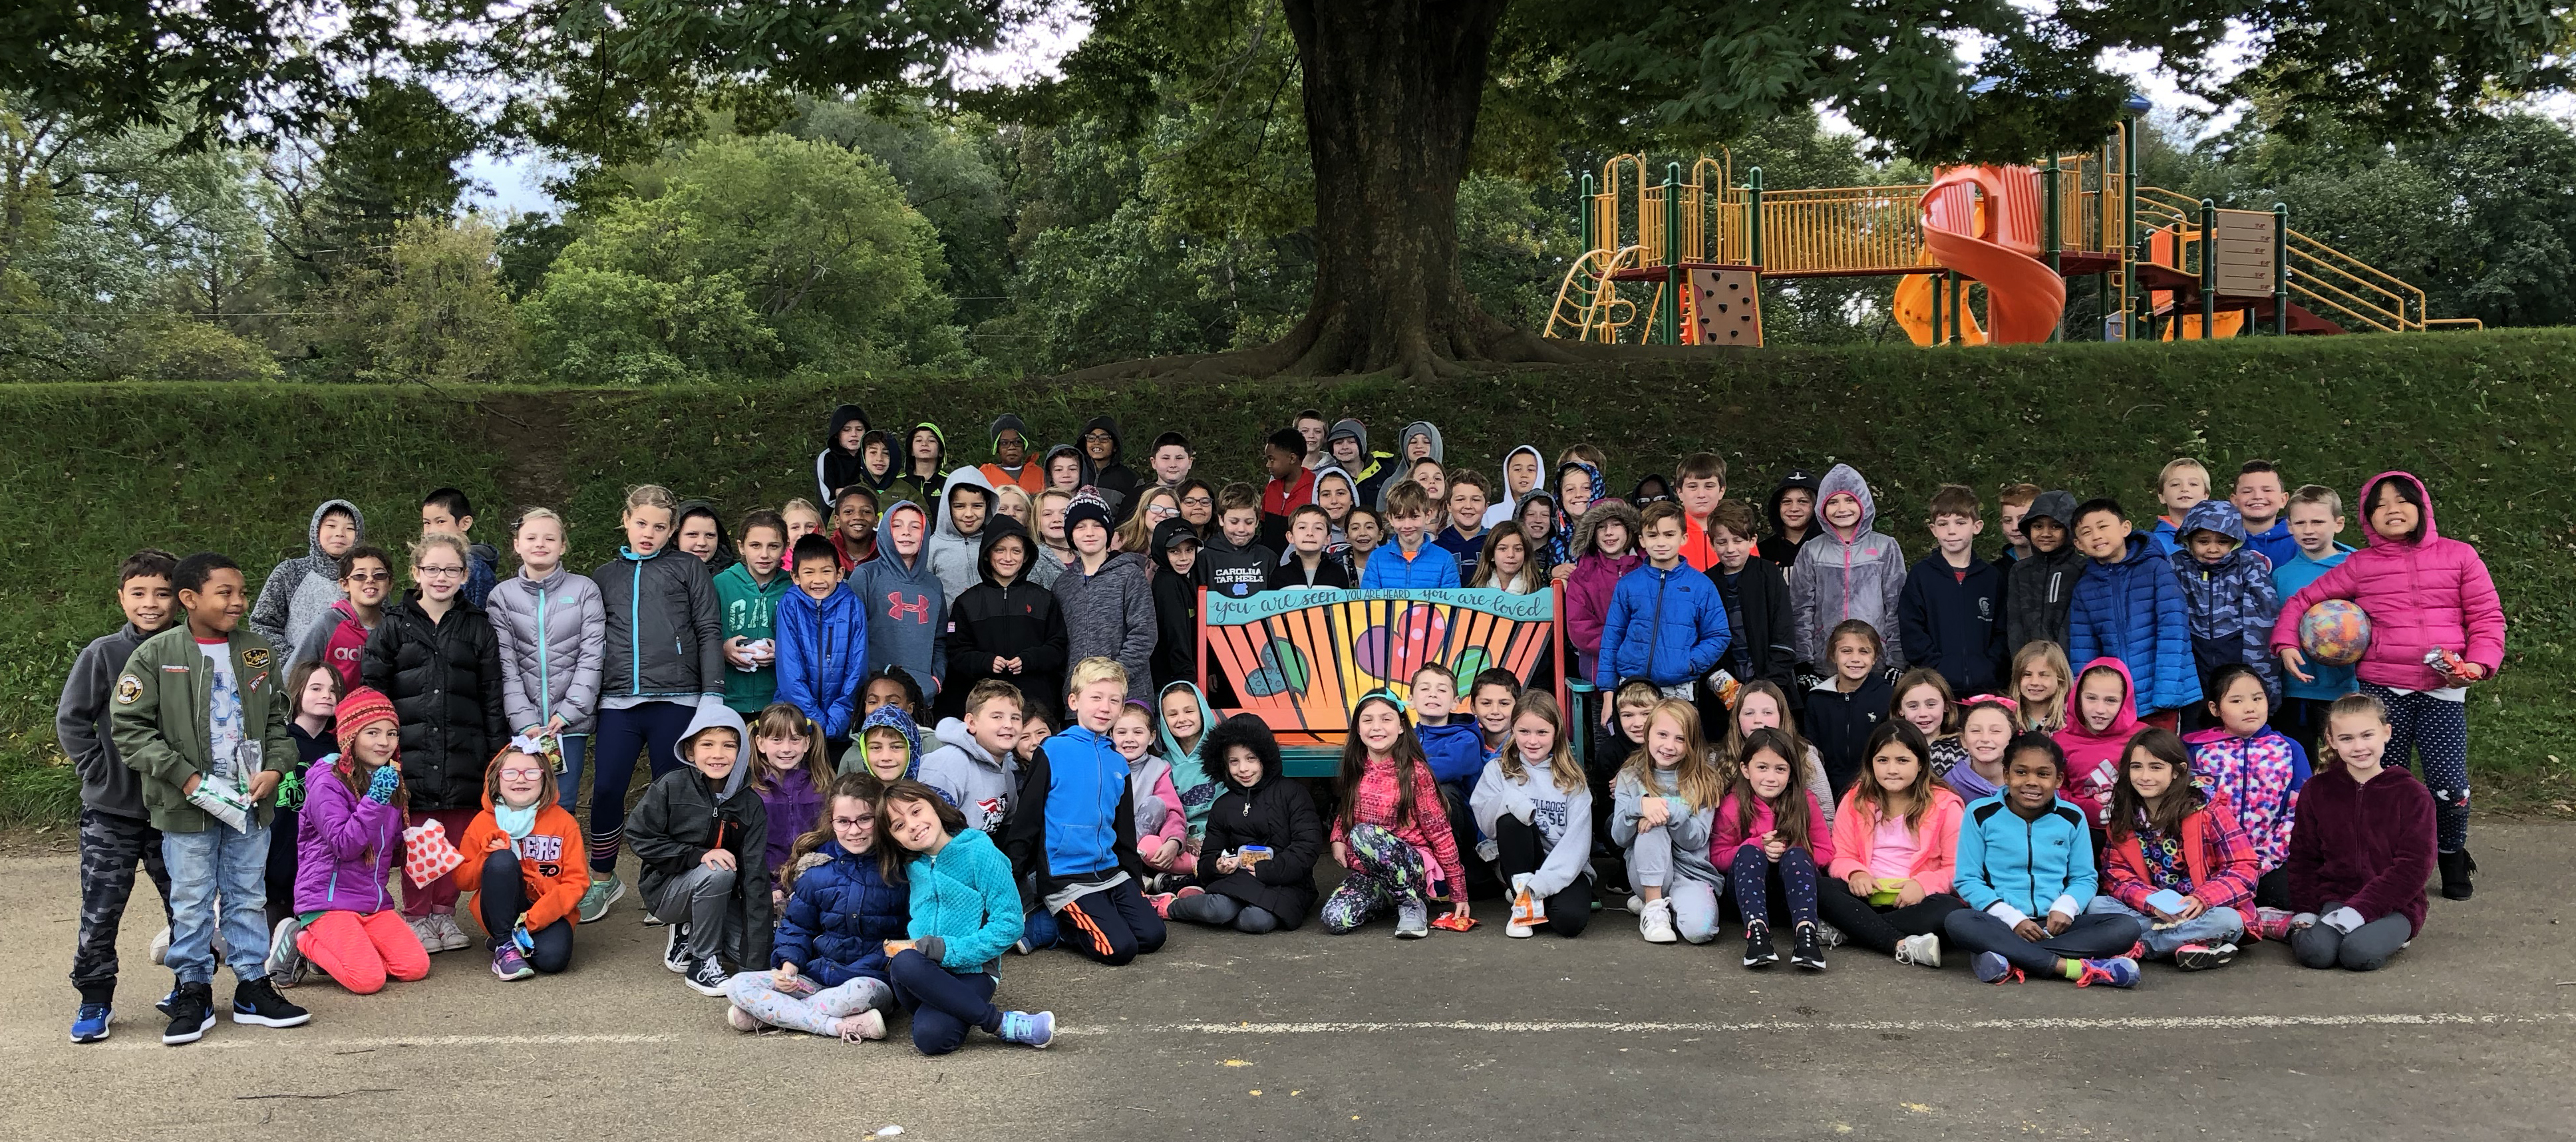 about 100 third graders standing around a colorful bench on the blacktop part of the playground